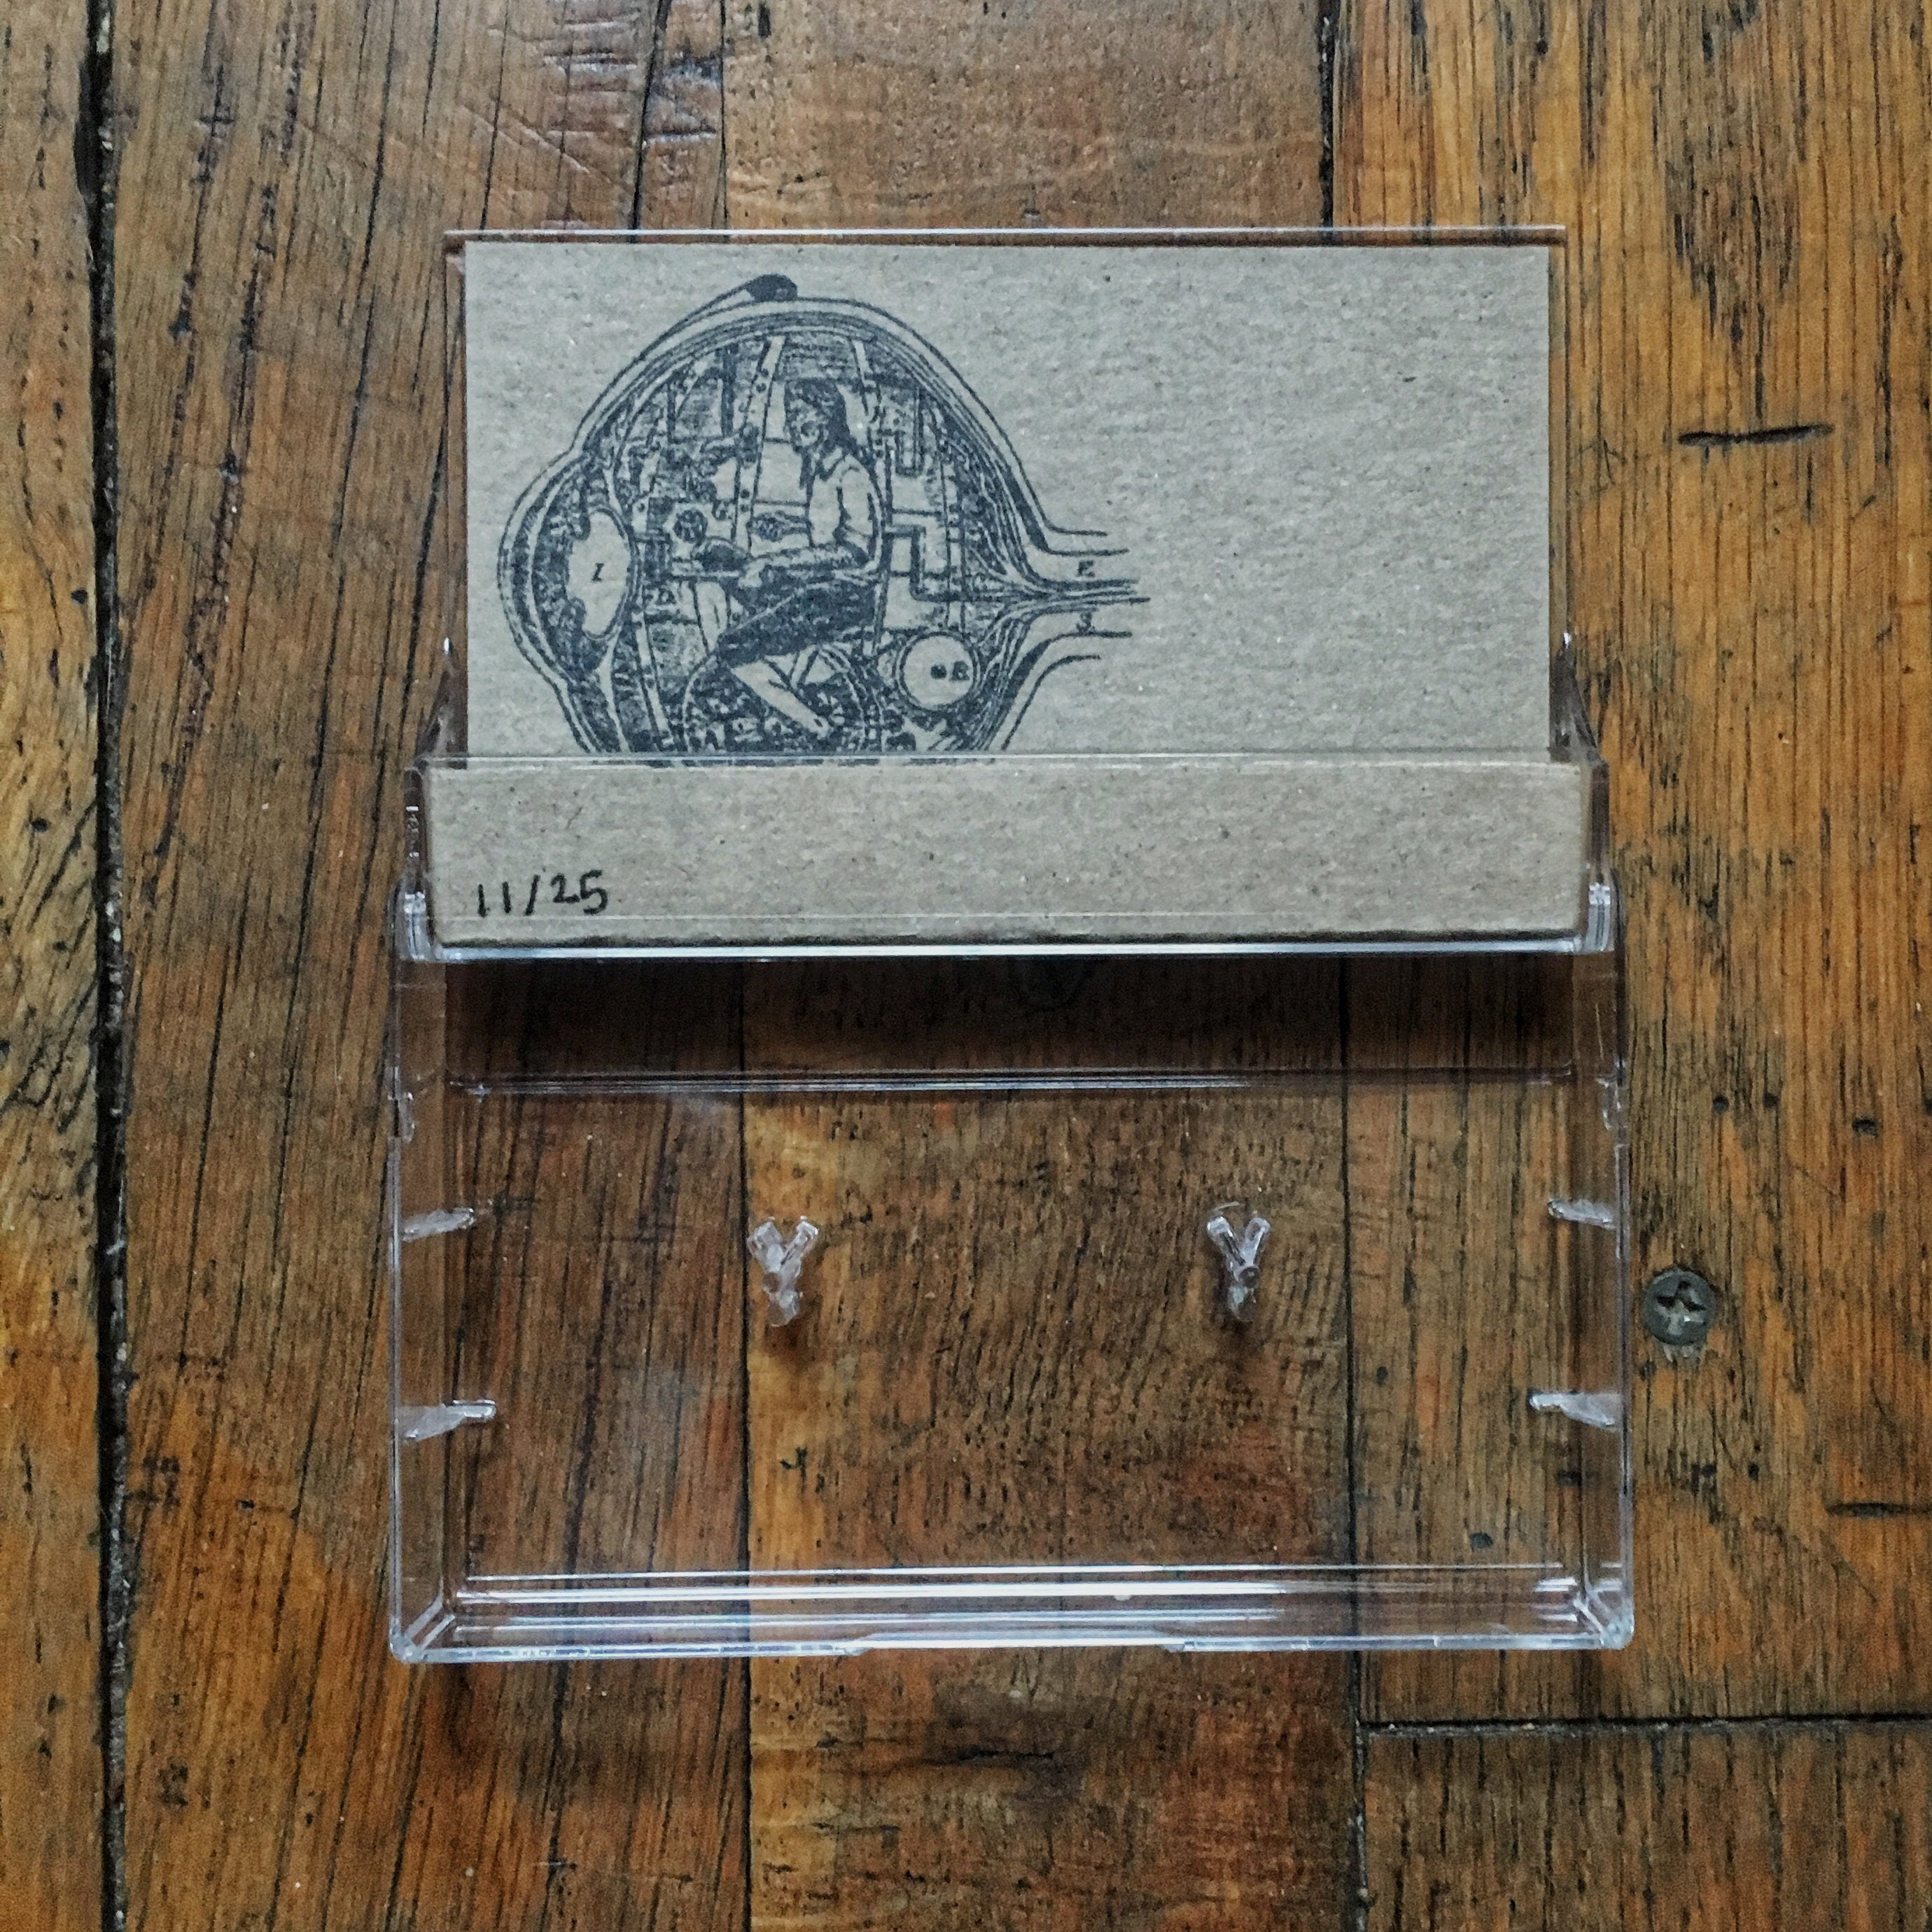 Cassette Tape Loop: 5 Second Length / 2 Pack *(for Ambient, Lo Fi, and Experimental Home Recording)